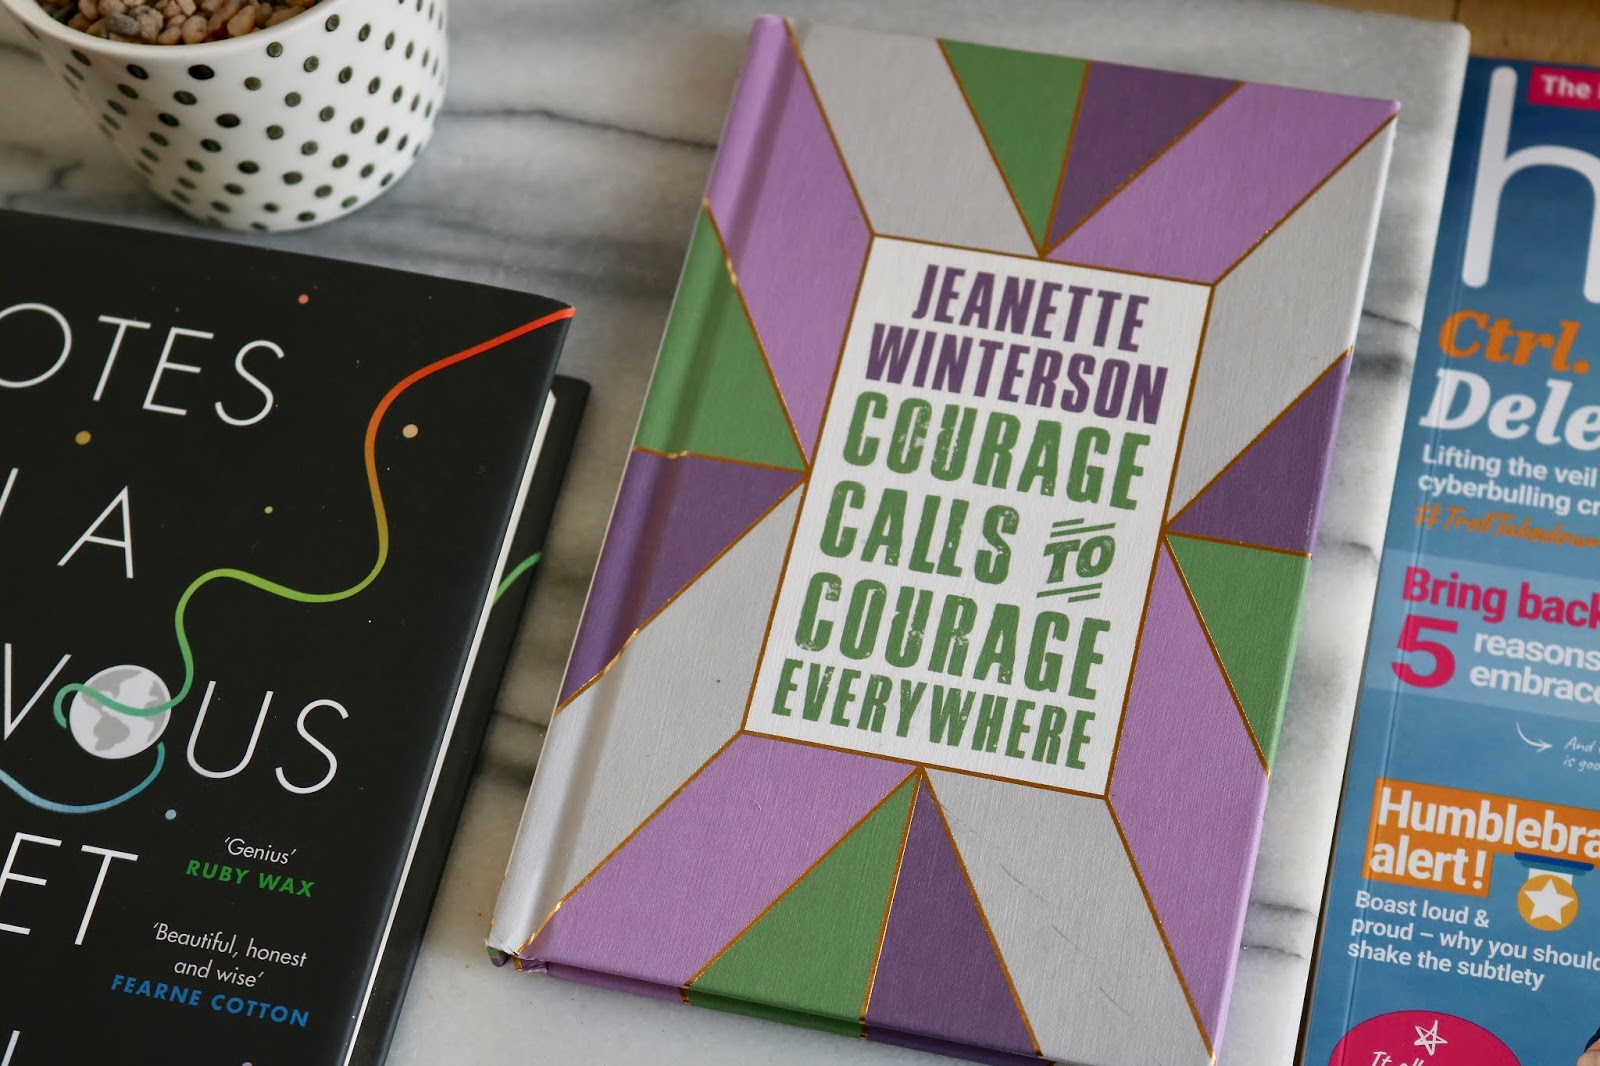 COURAGE CALLS TO COURAGE EVERYWHERE BY JEANNETTE WINTERSON